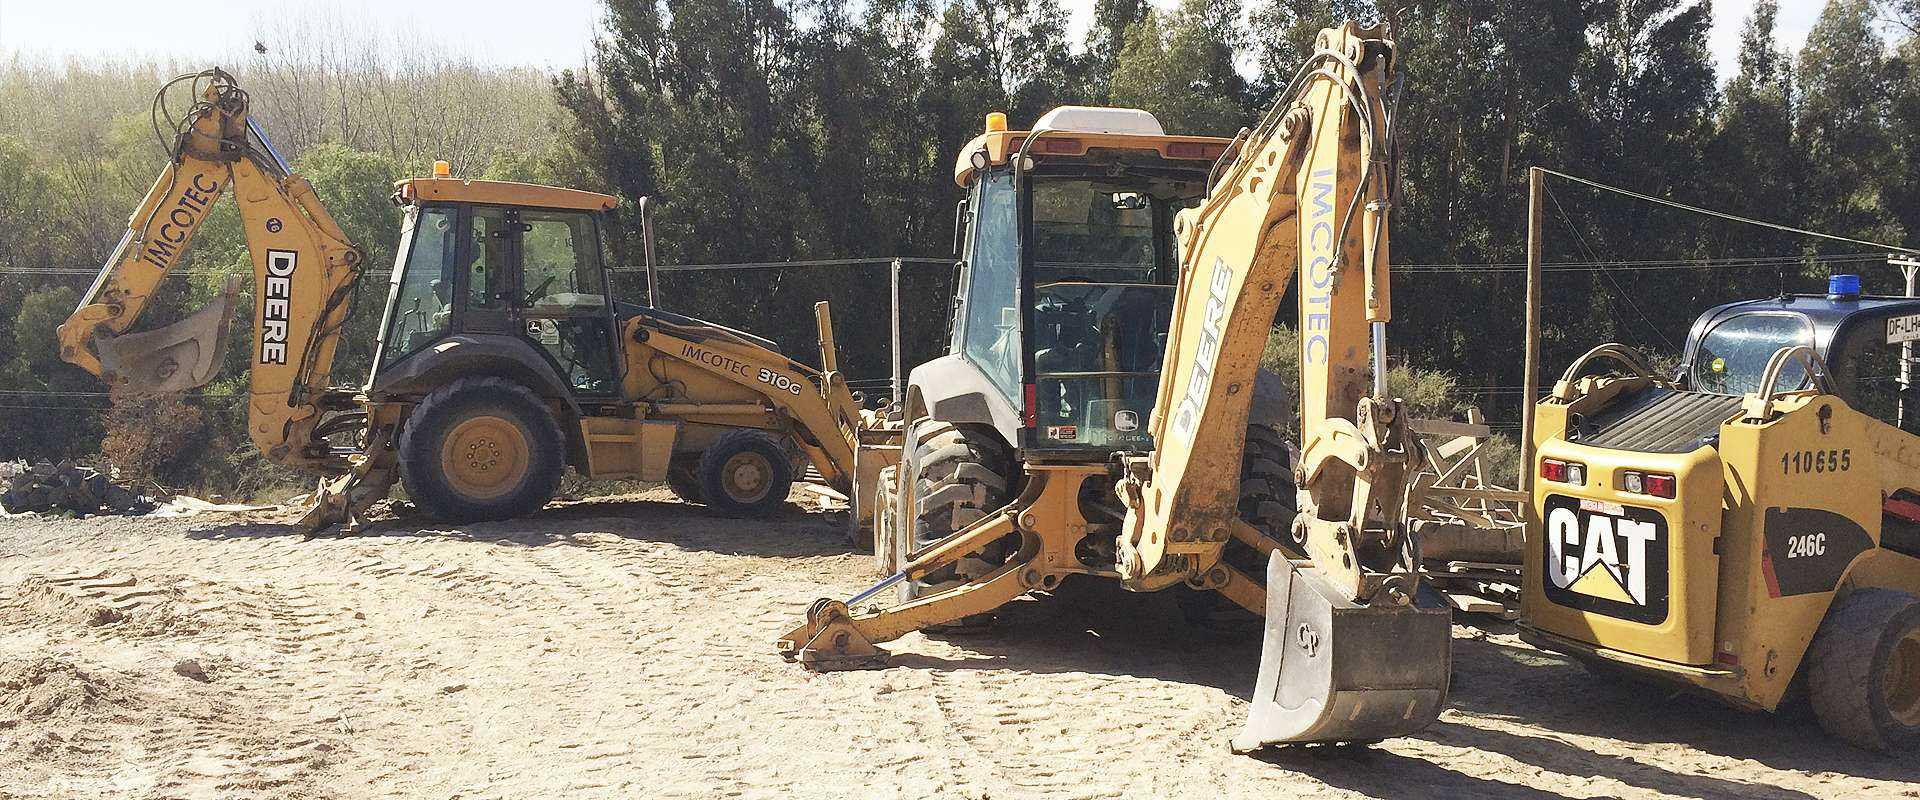 DEERE CAT IMCOTEC